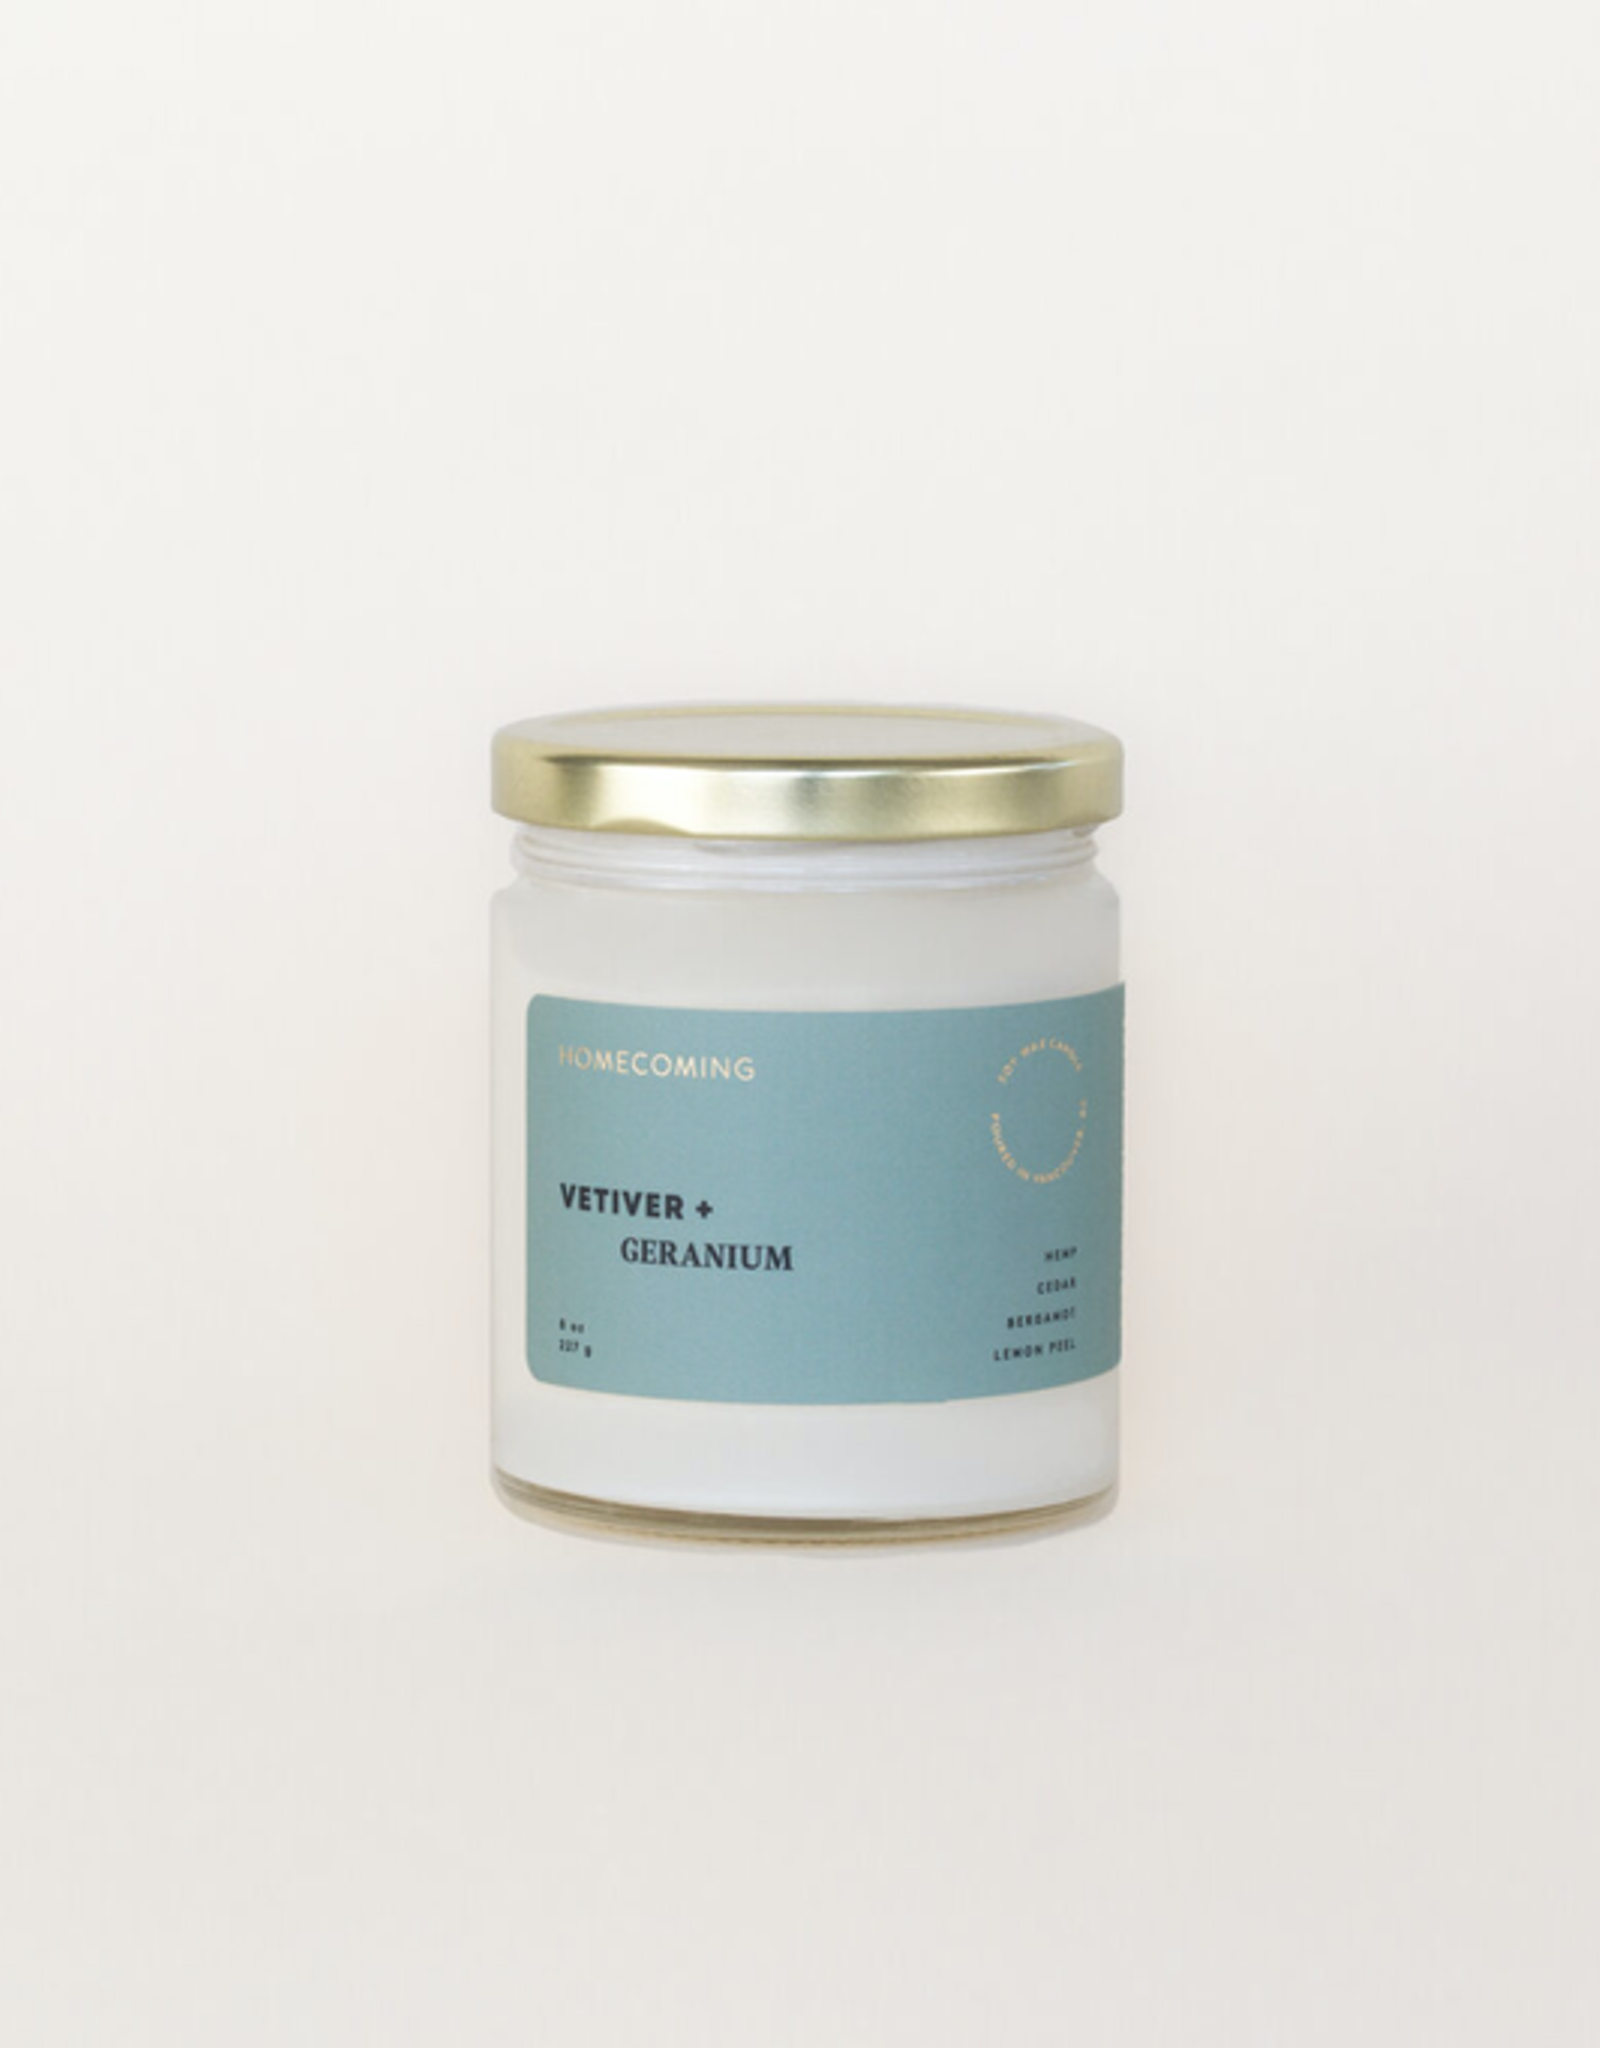 Vetiver And Geranium Candle